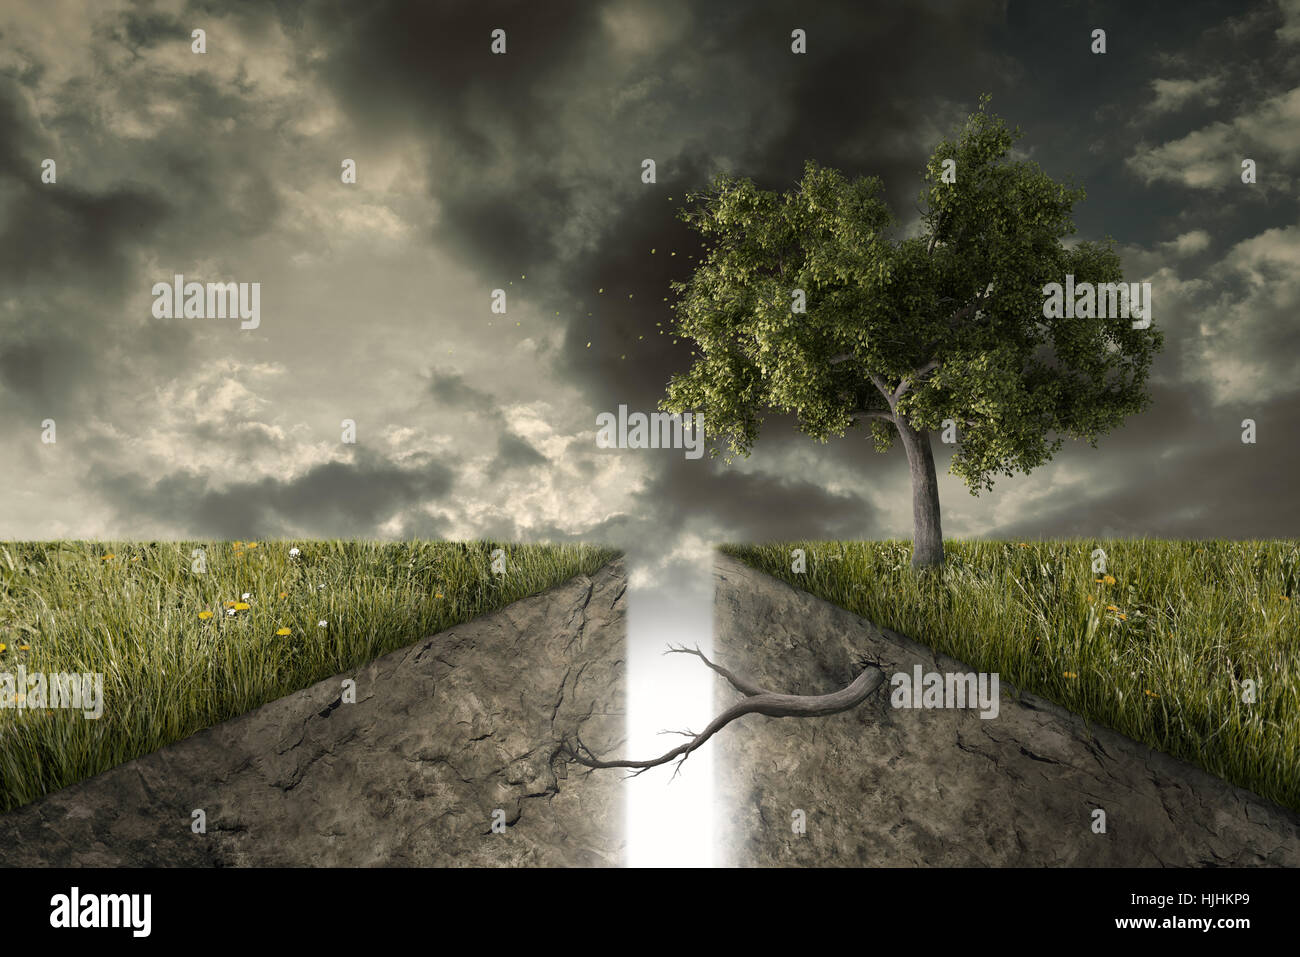 tree, union, land, globe, planet, earth, world, fracture, realty, ground, - Stock Image